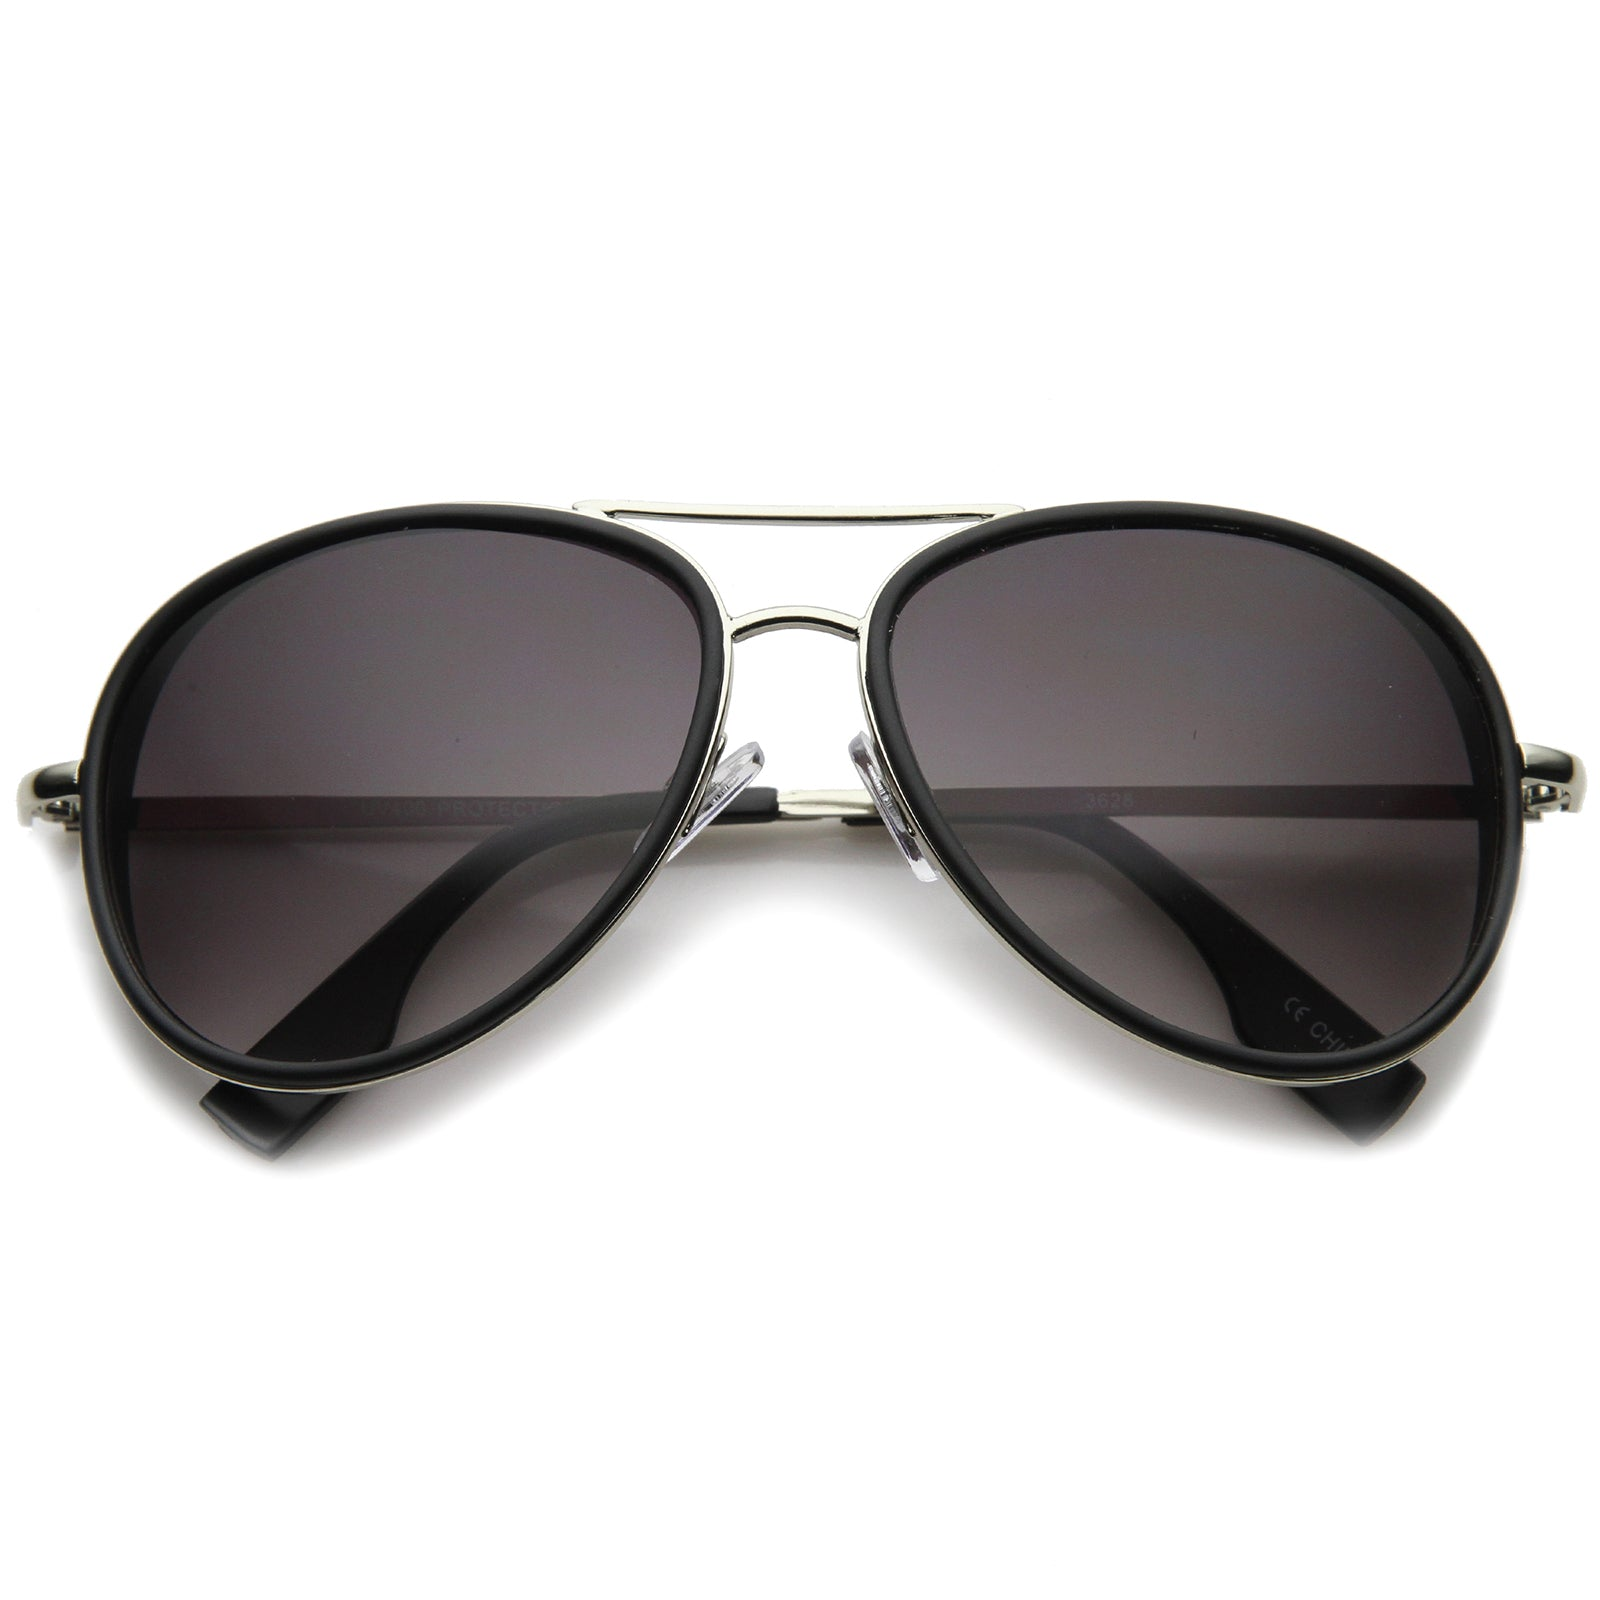 Womens Aviator Sunglasses With UV400 Protected Gradient Lens - sunglass.la - 5